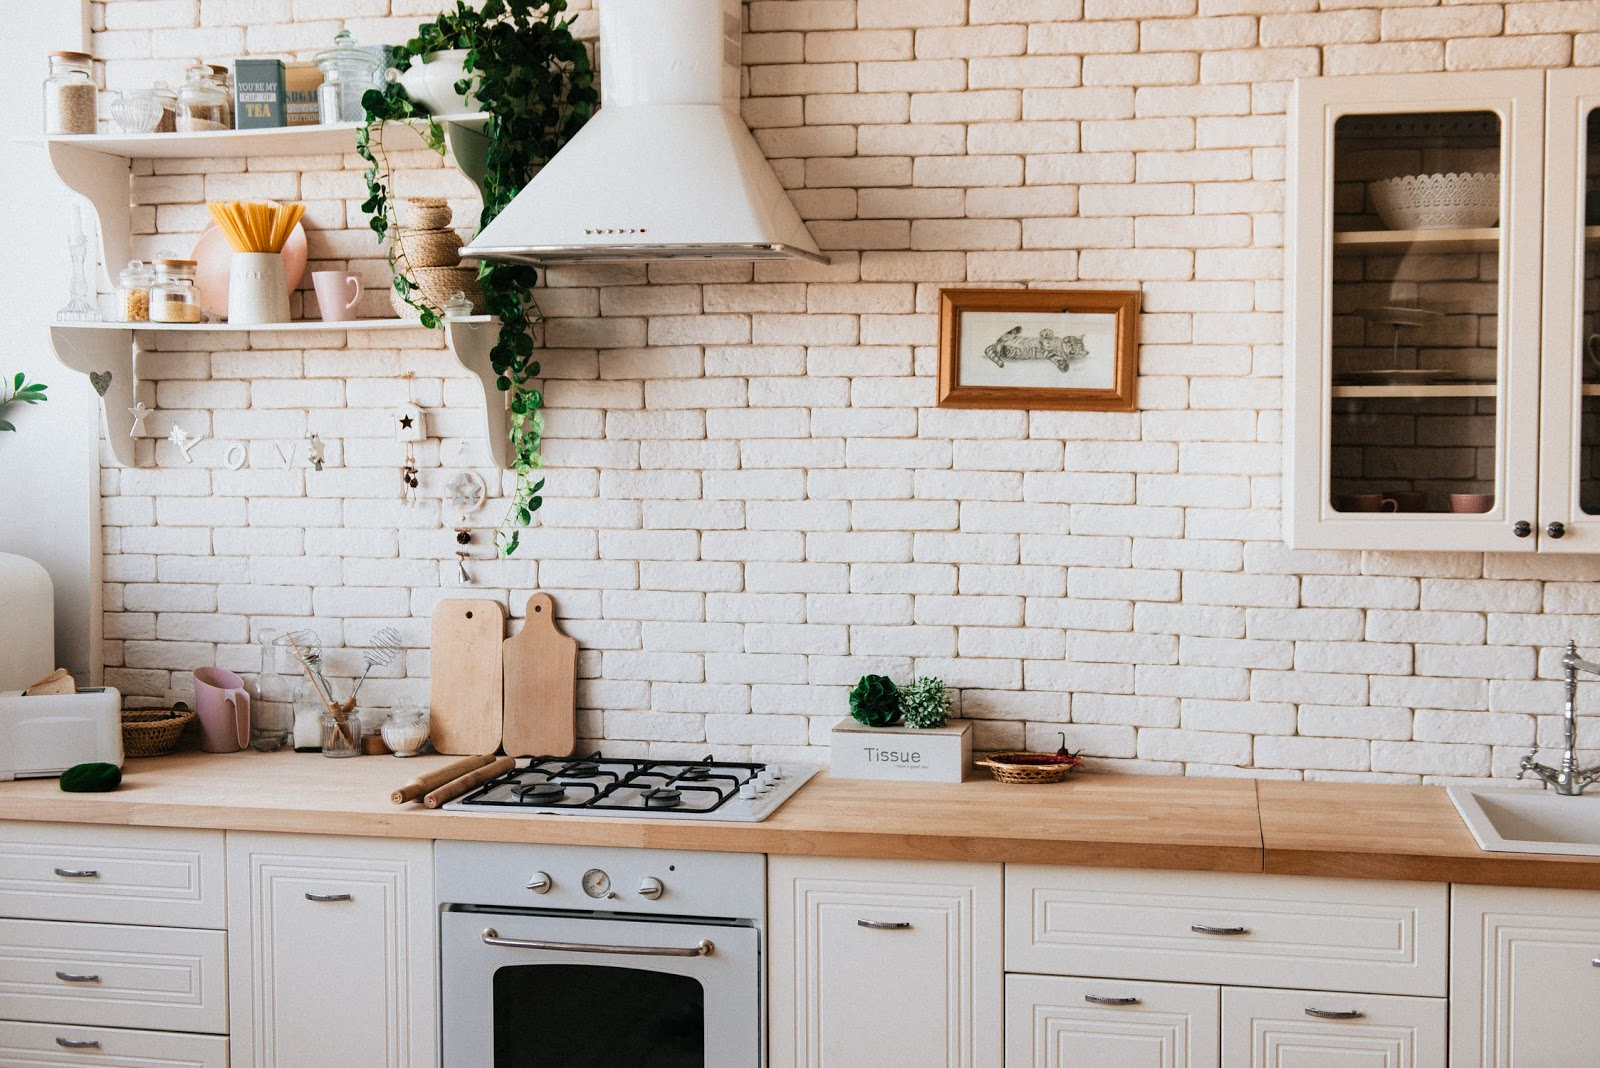 Steam convection oven: a conventional oven in a rustic kitchen